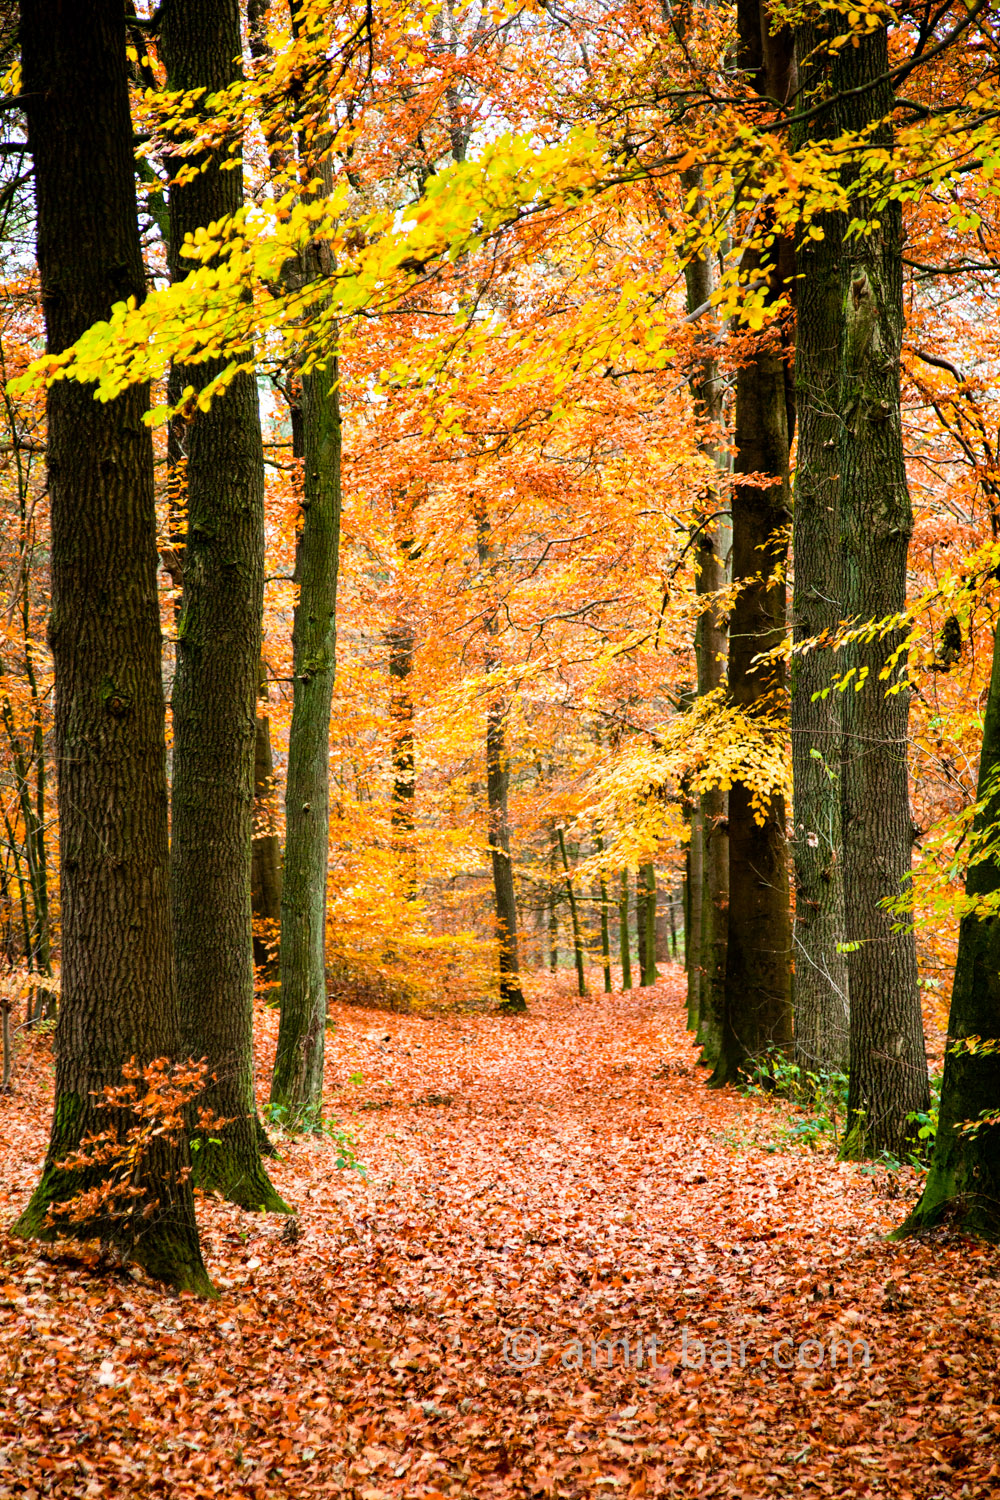 Beech trees in the autumn. Doetinchem, The Netherlands